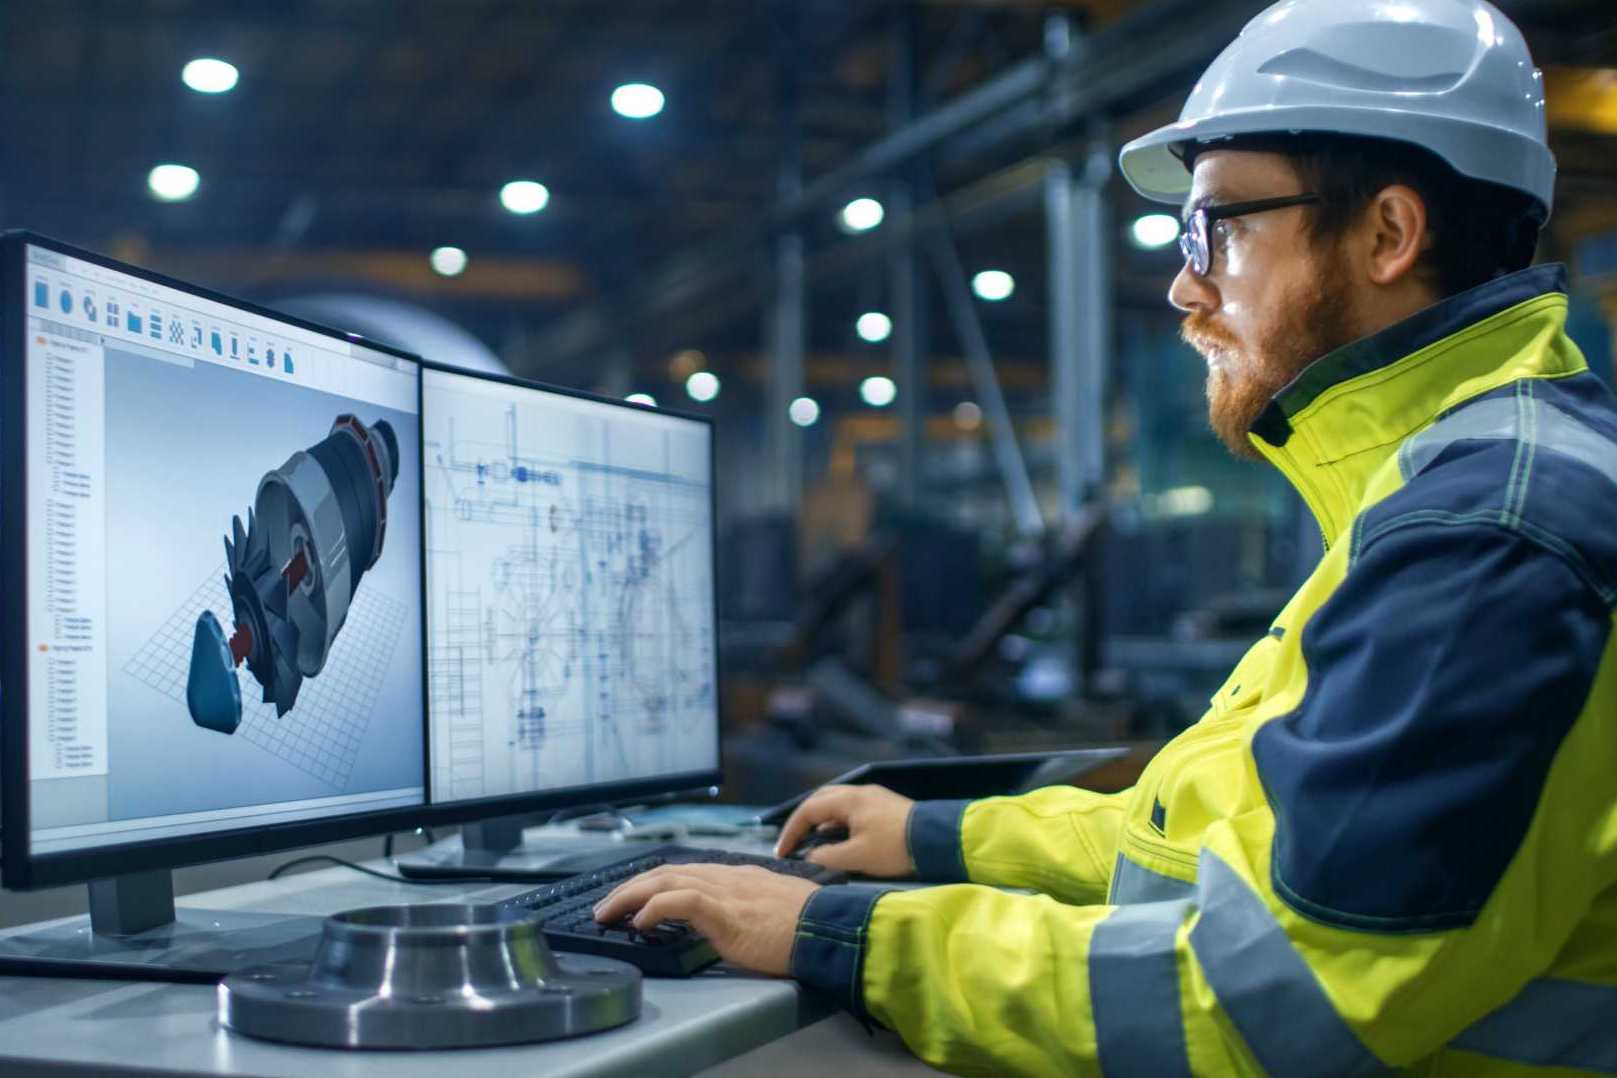 Transformation of industrial safety and labor protection on manufacture